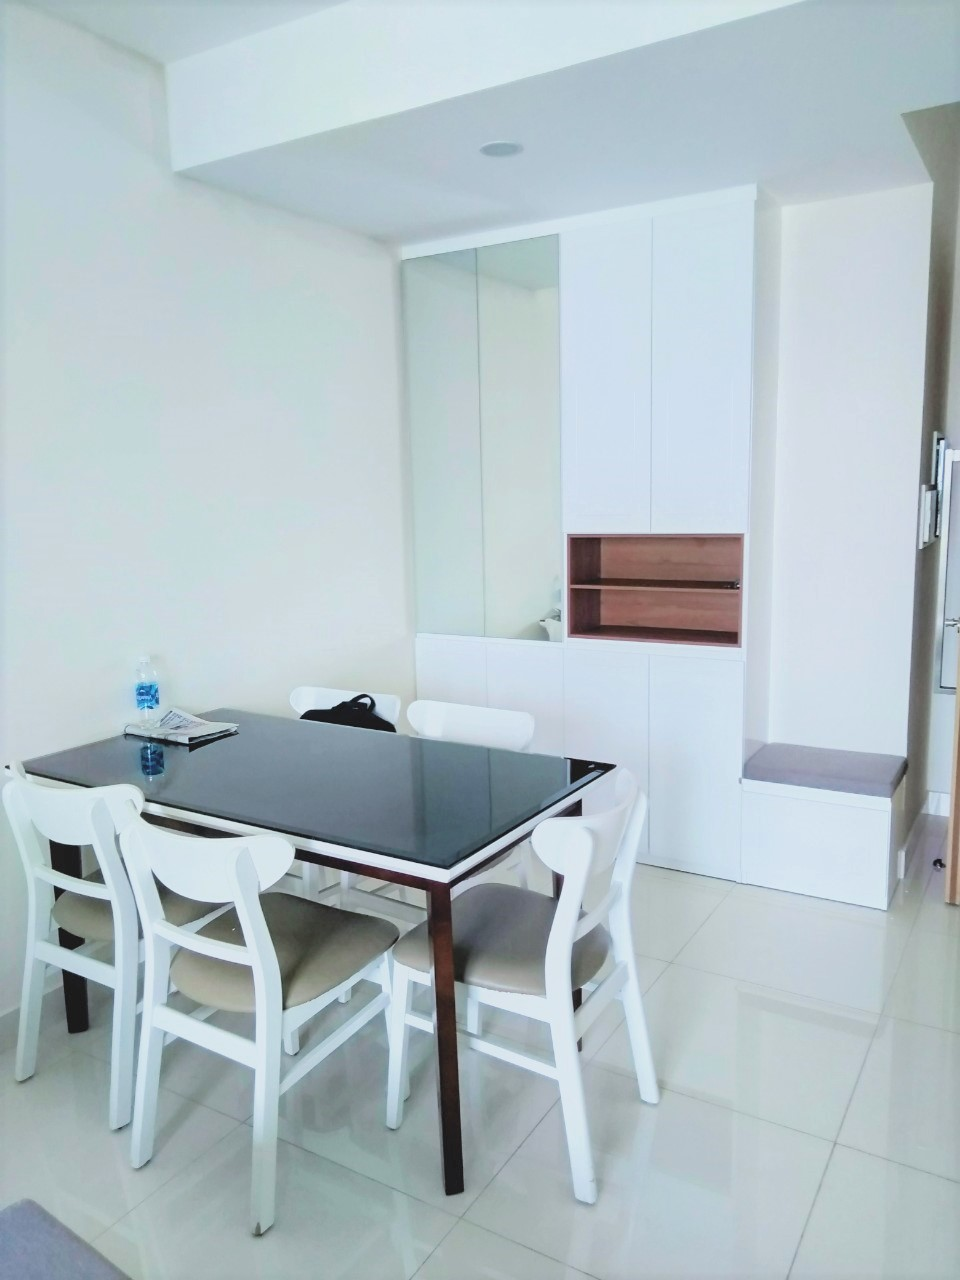 Apartment for rent D221171 (1)